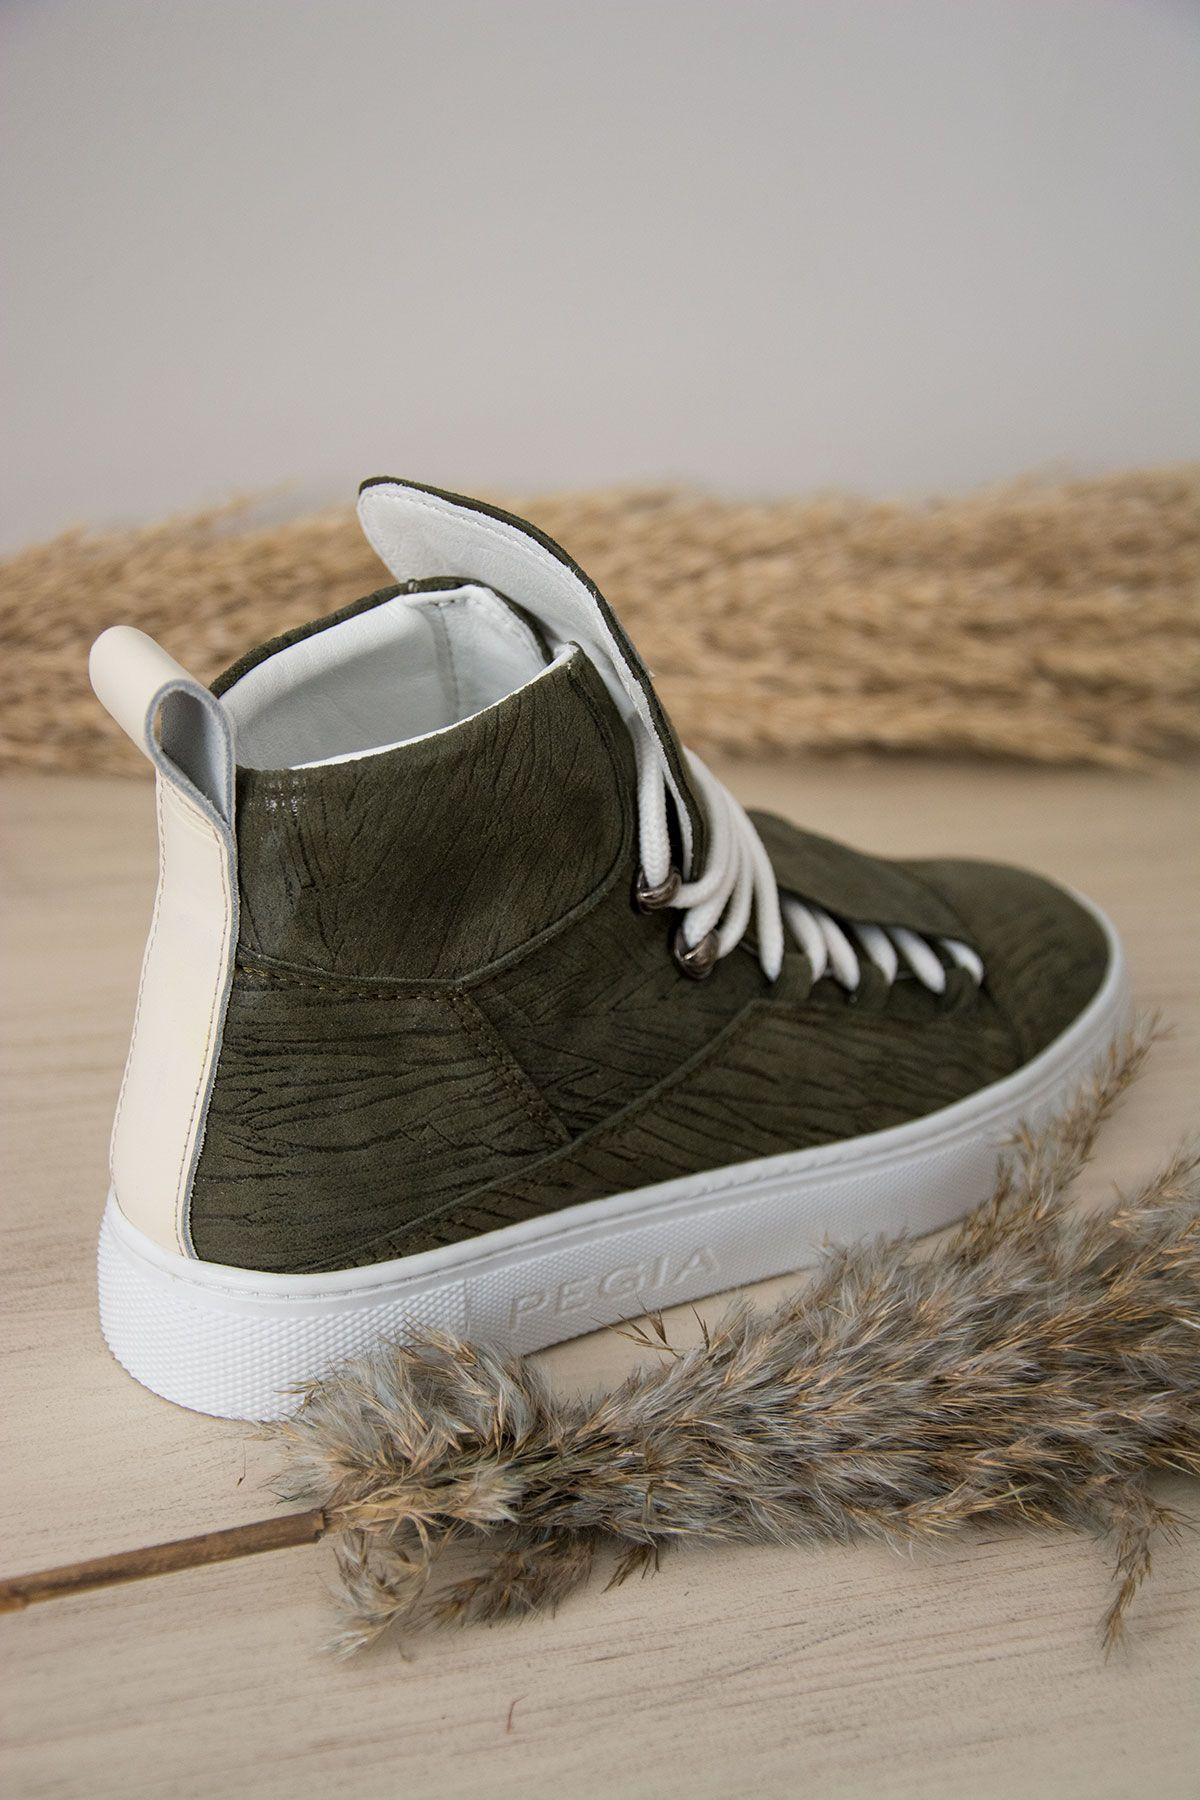 Pegia Genuine Leather Women's Sneaker LA1313 Khaki